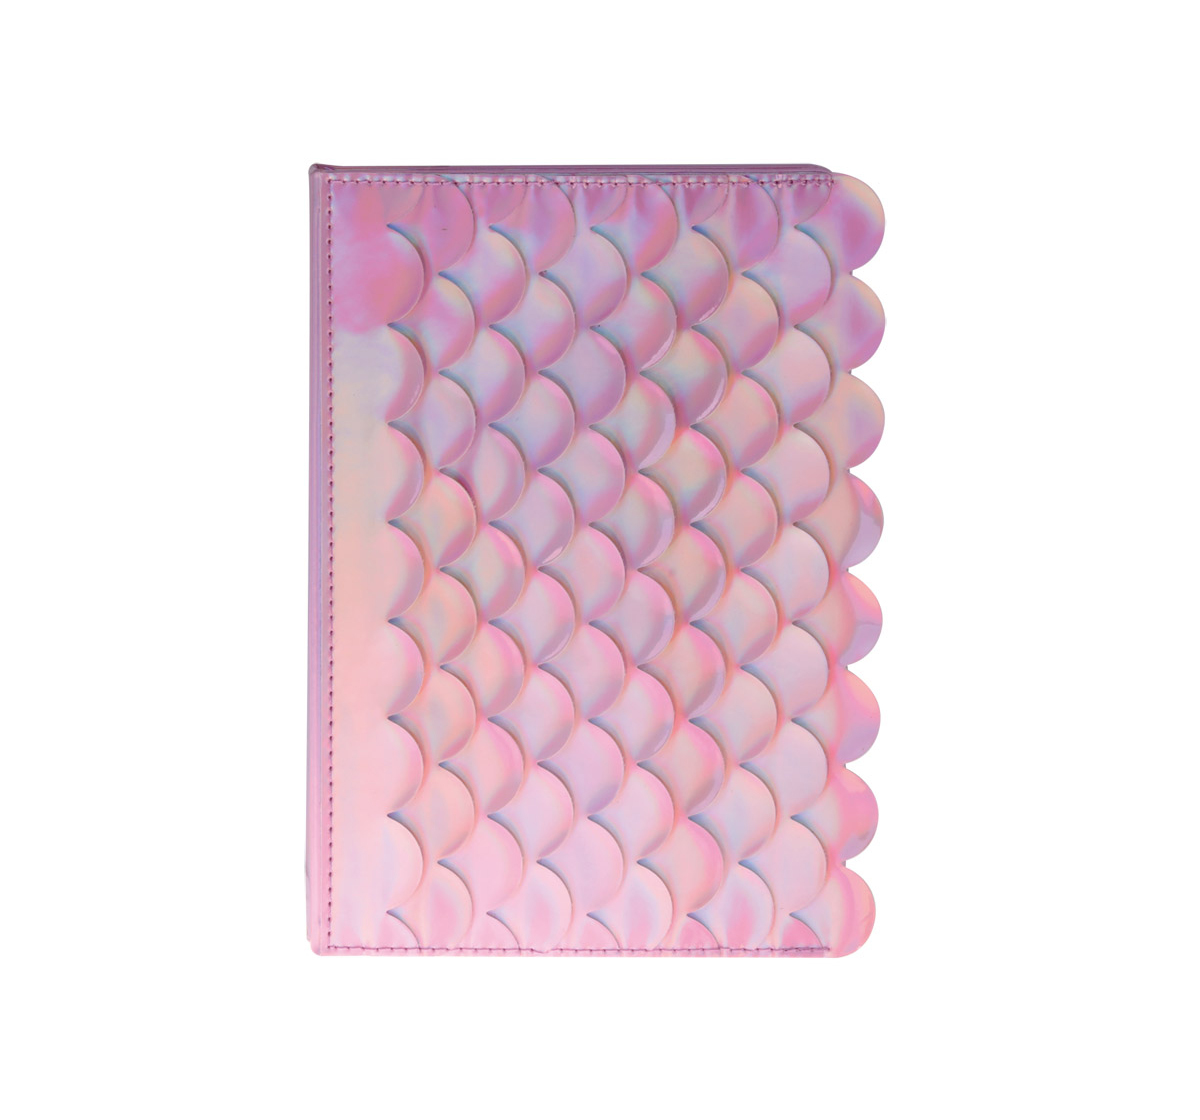 Syloon | Syloon Metallic - Mermaid Pink Holo Pu A5 Notebook Study & Desk Accessories for Kids age 5Y+ (Pink)